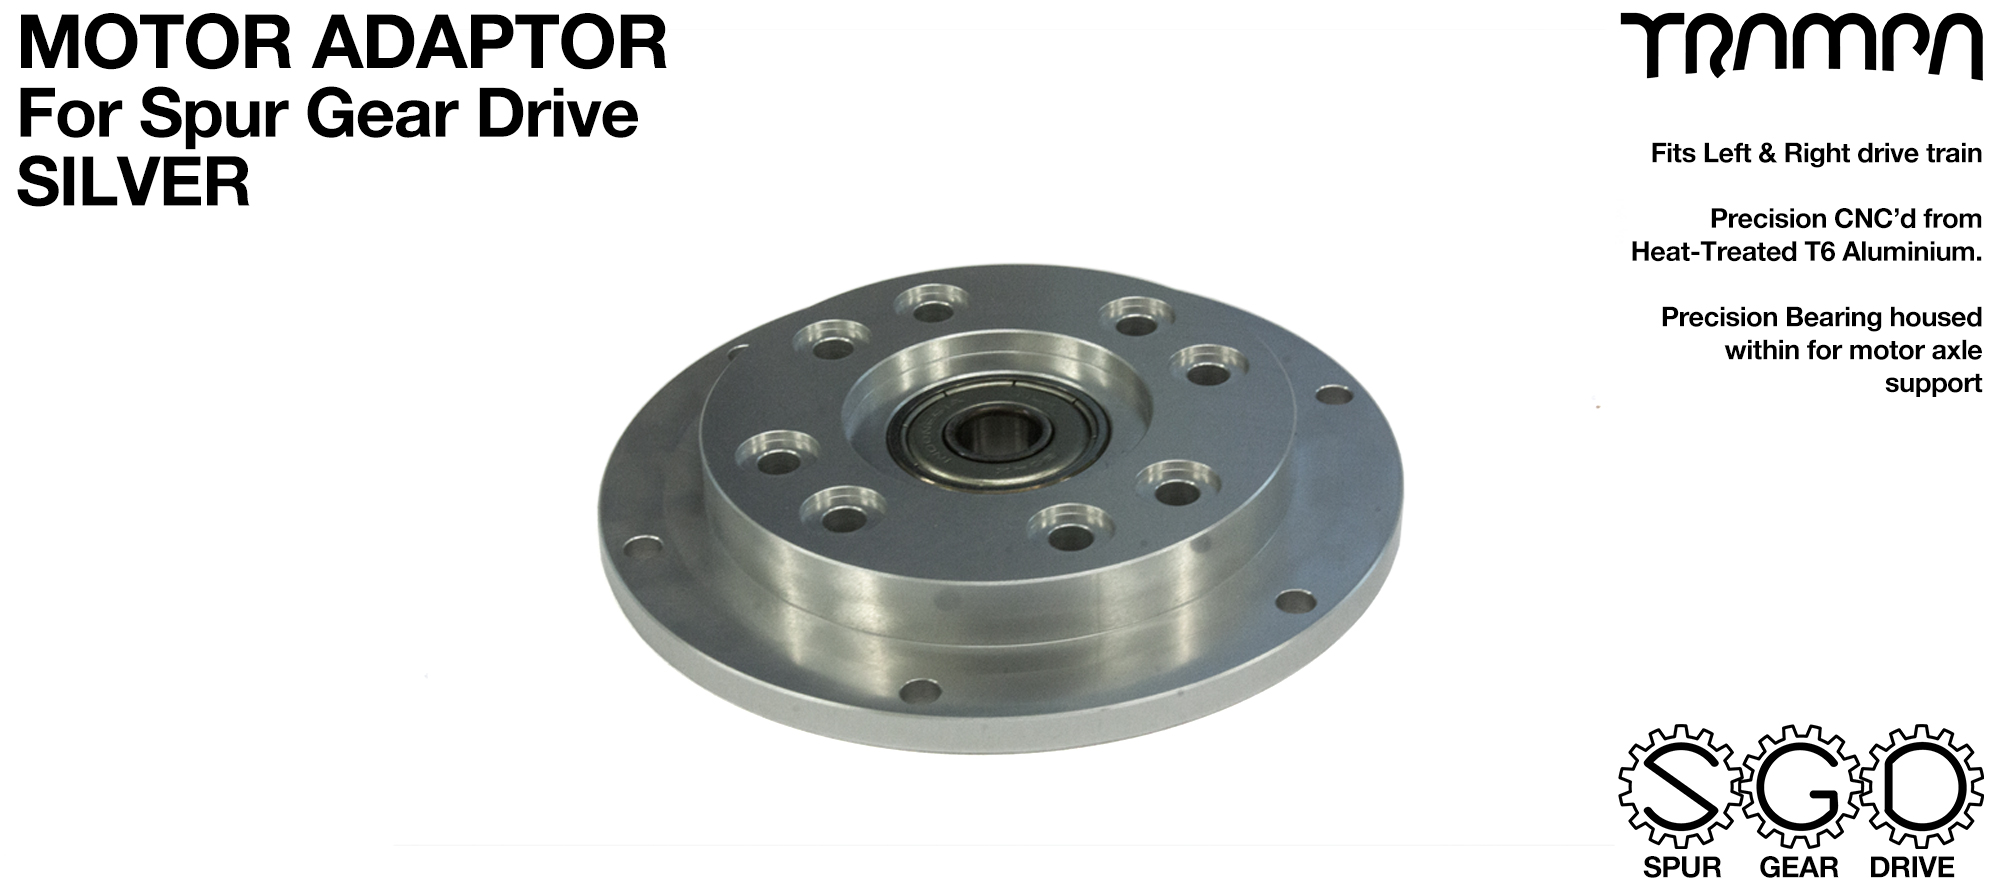 Motor Adapter Plate - SILVER - OUT OF STOCK